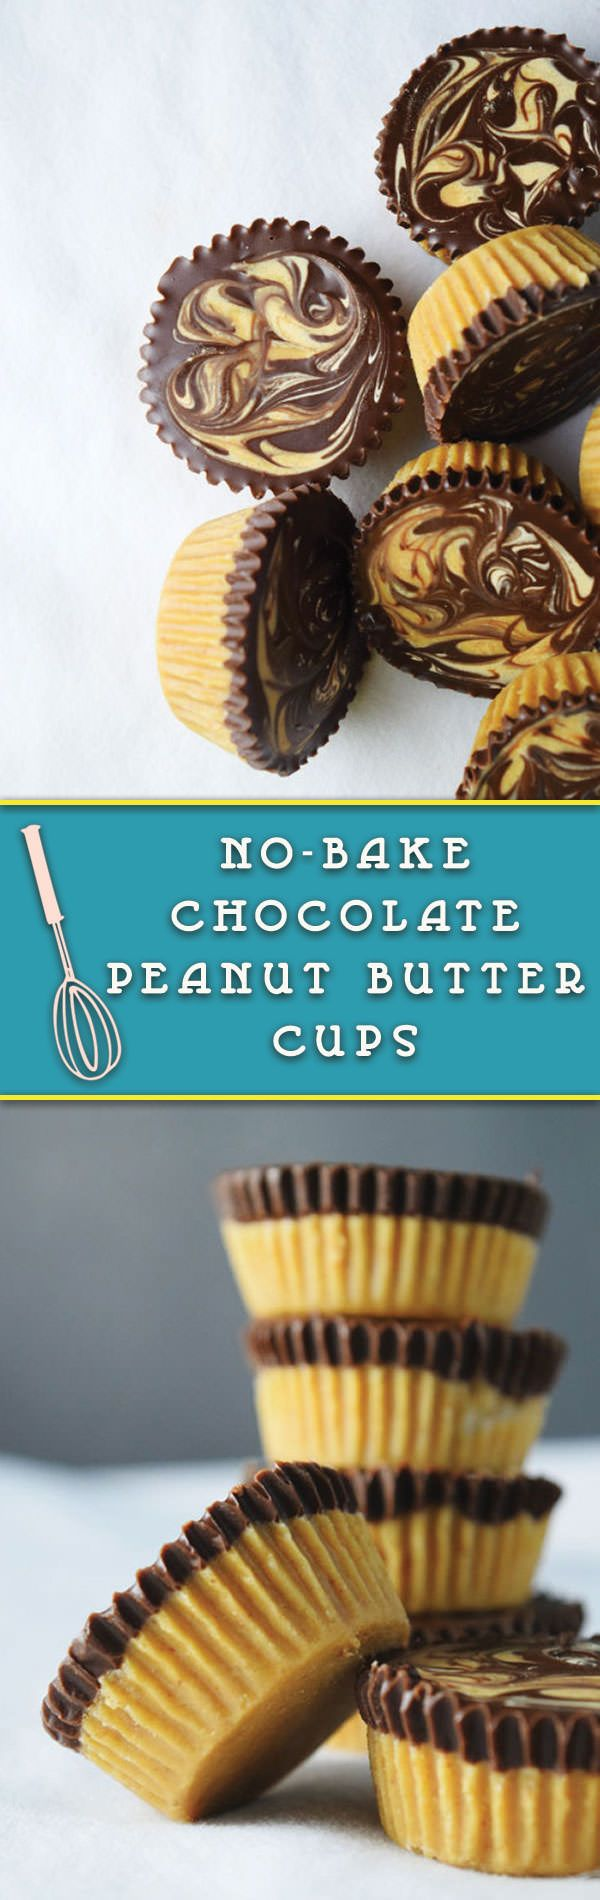 No Bake, Just 4 Ingredients Chocolate Peanut Butter Cups are easy to back to school treats. Make them ahead & keep stored in the refrigerator.